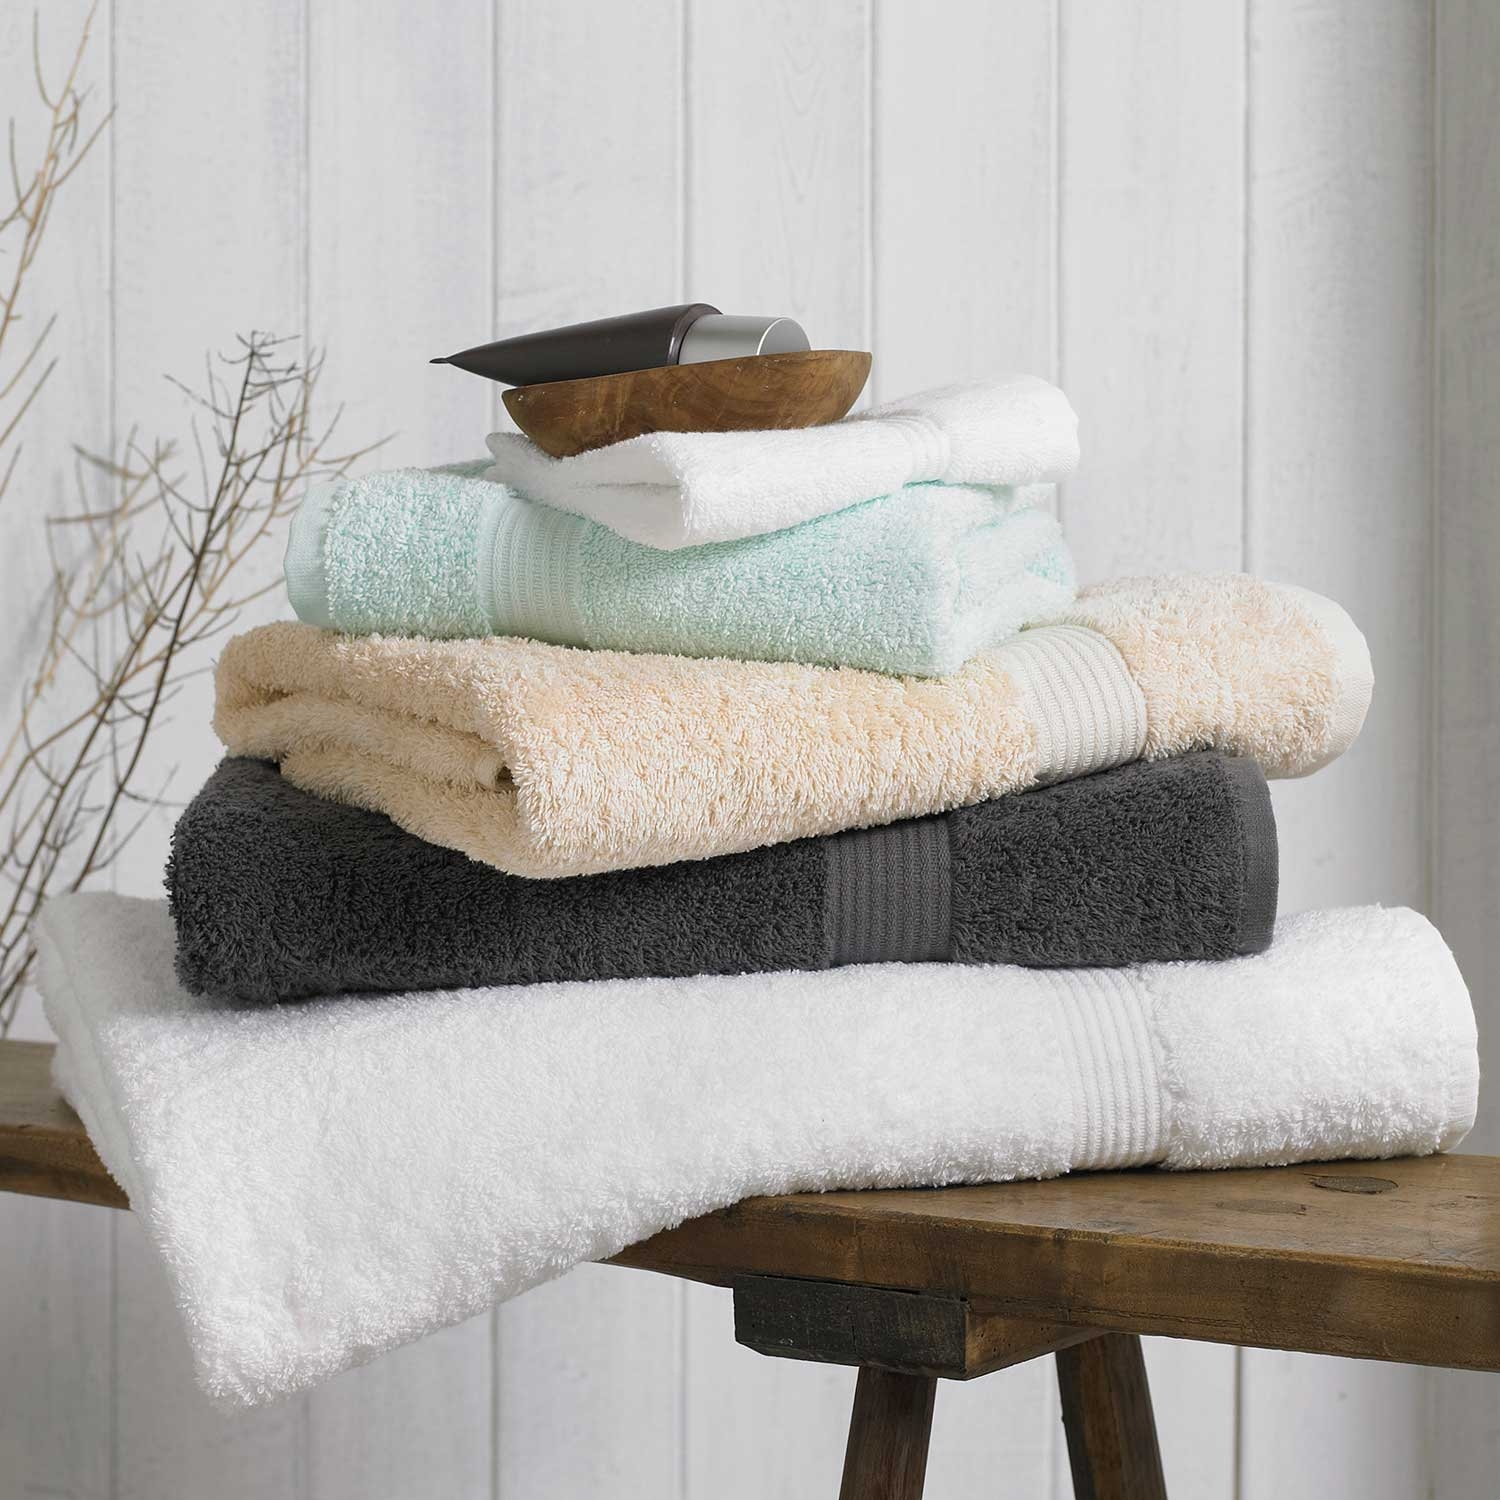 Luxe Spa Towels